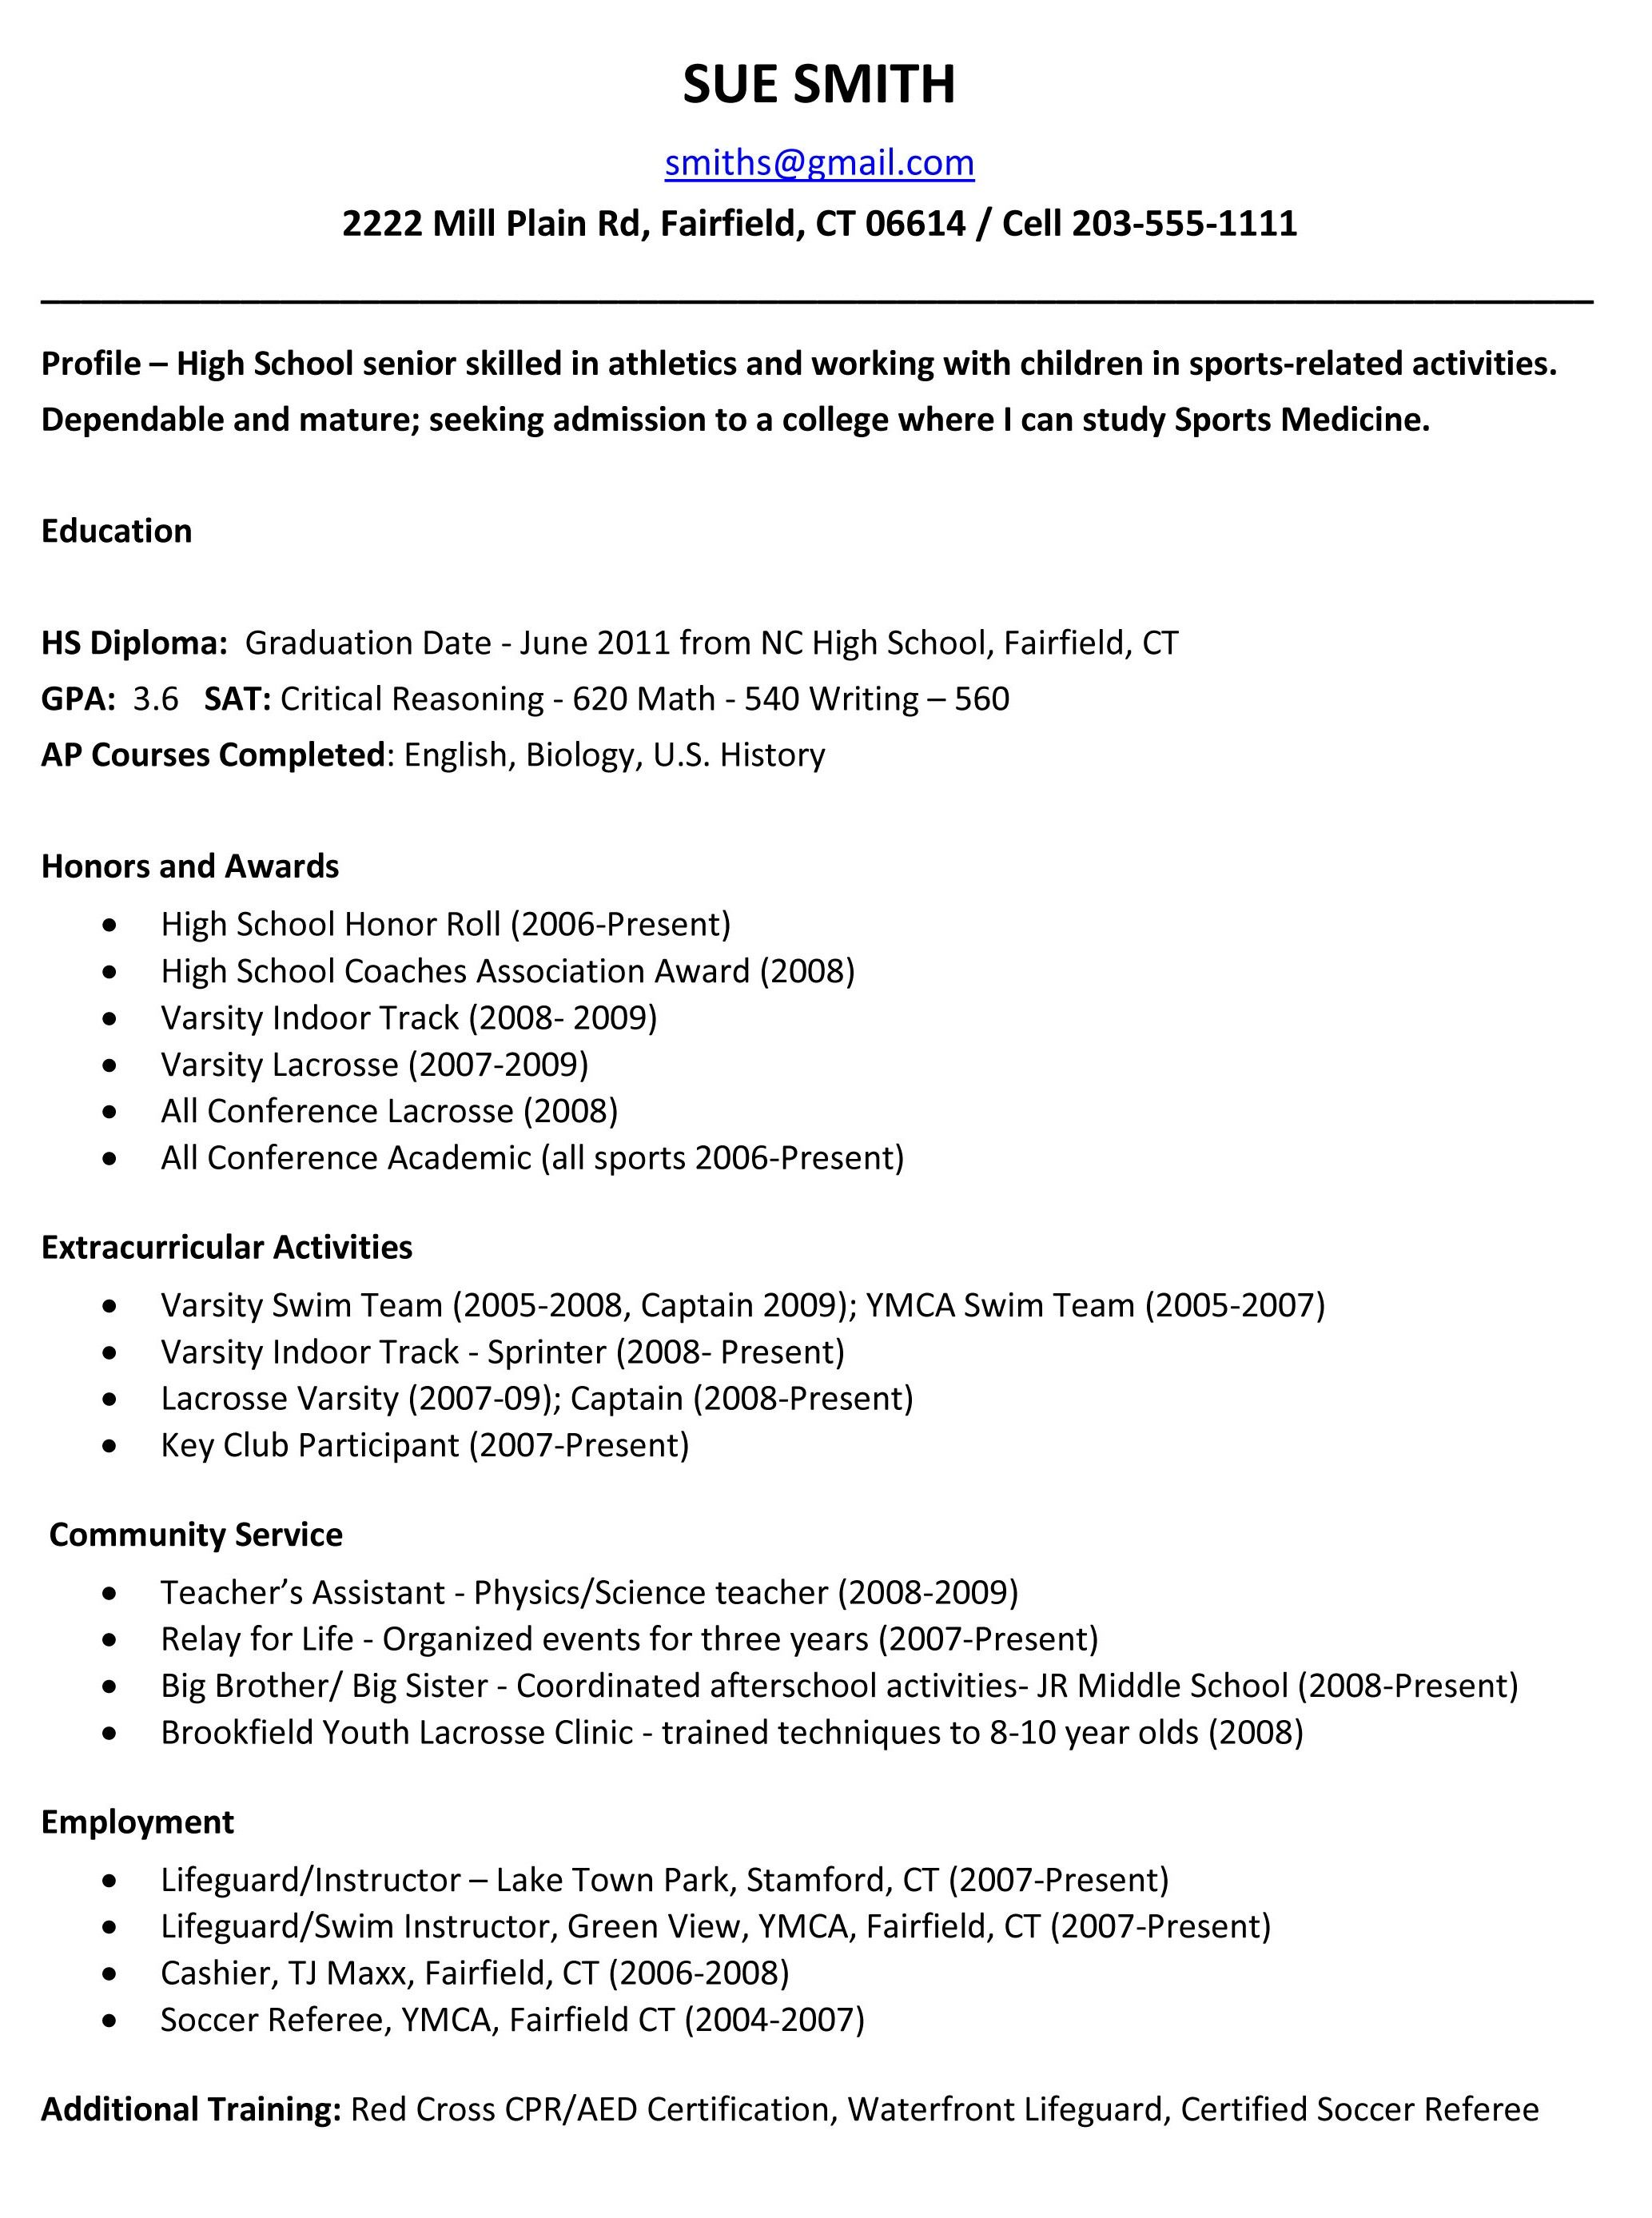 example resume for high school students for college applications school resume templateregularmidwesternerscom regularmidwesterners - College Resume